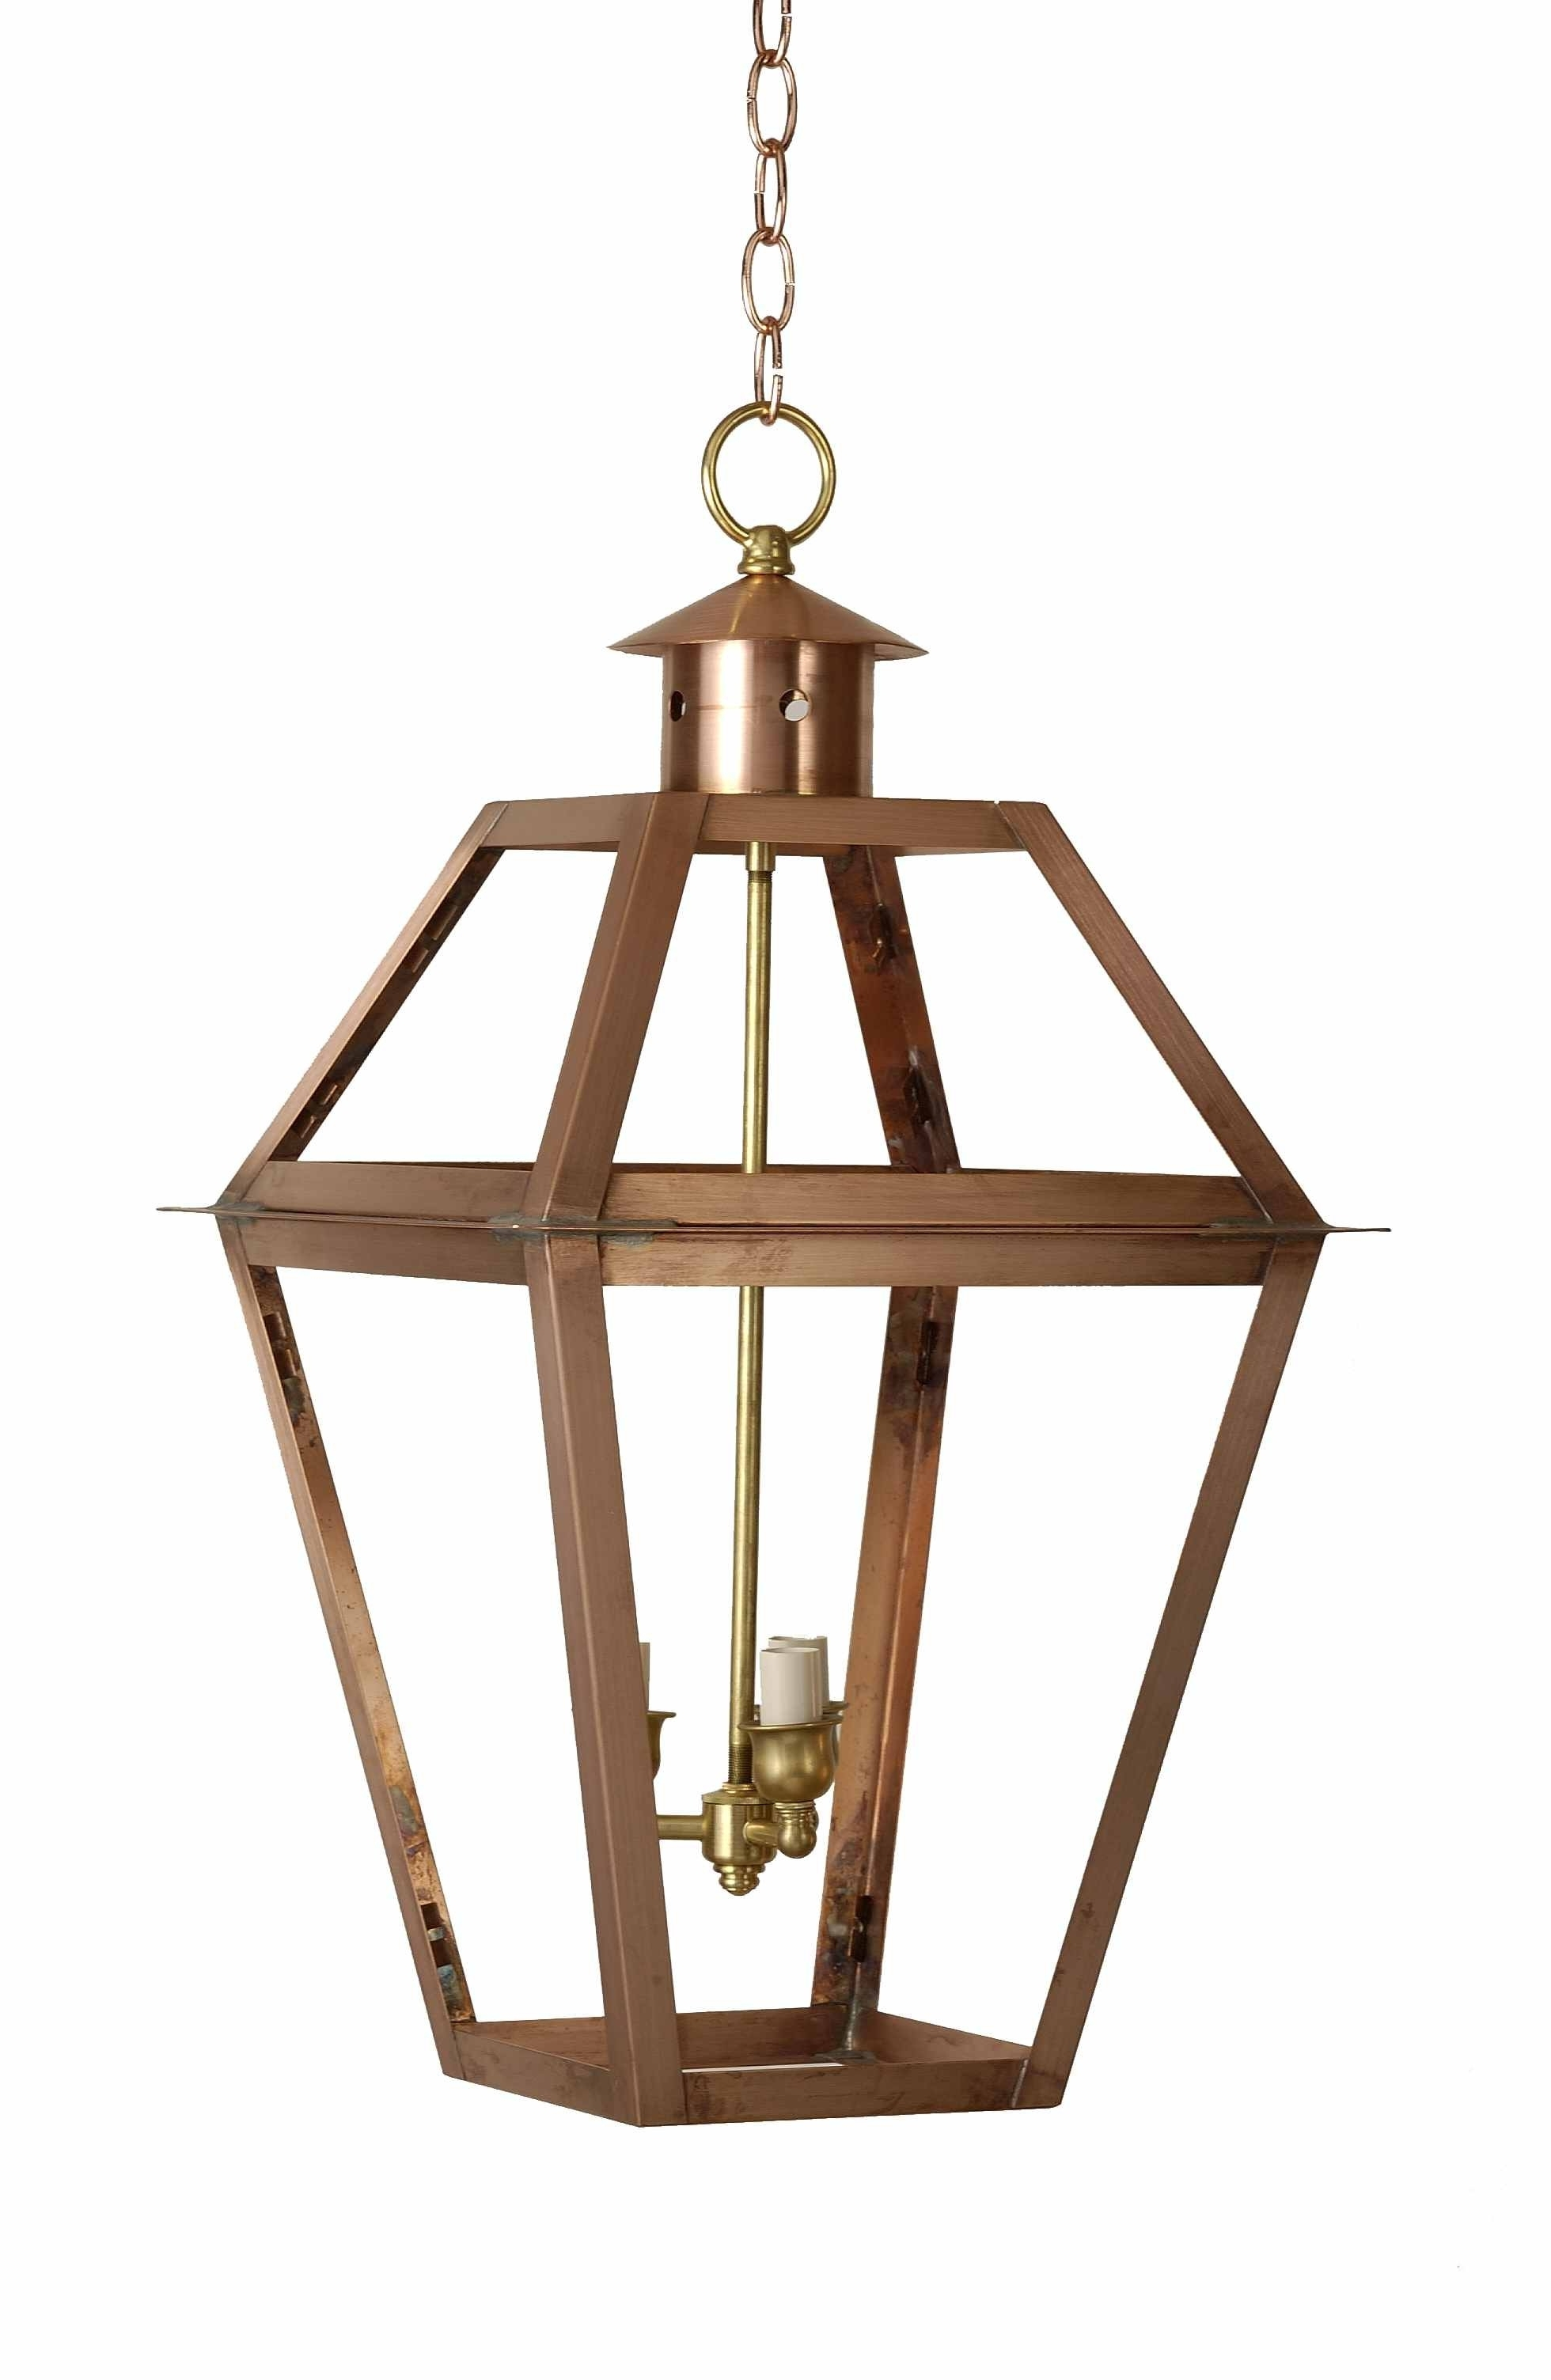 Fireplace : Charleston Chain Mount Outdoor Lantern Hanging Lanterns Pertaining To Best And Newest Outdoor Hanging Lanterns From Australia (View 15 of 20)